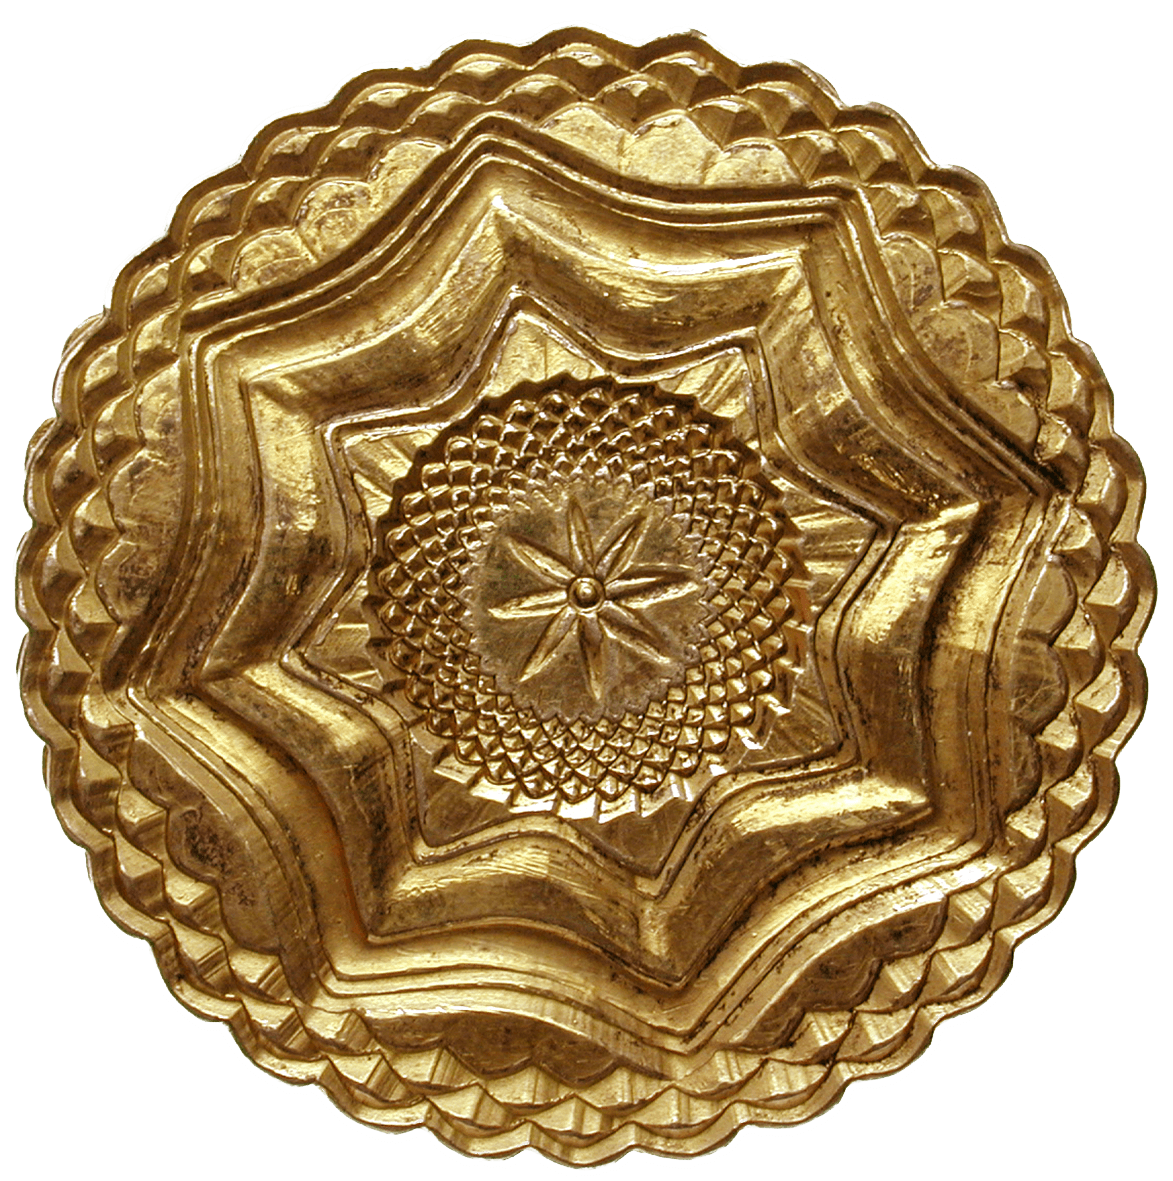 Zurich, Gold-Plated Silver Box for Keeping Coins or Medals (reverse)